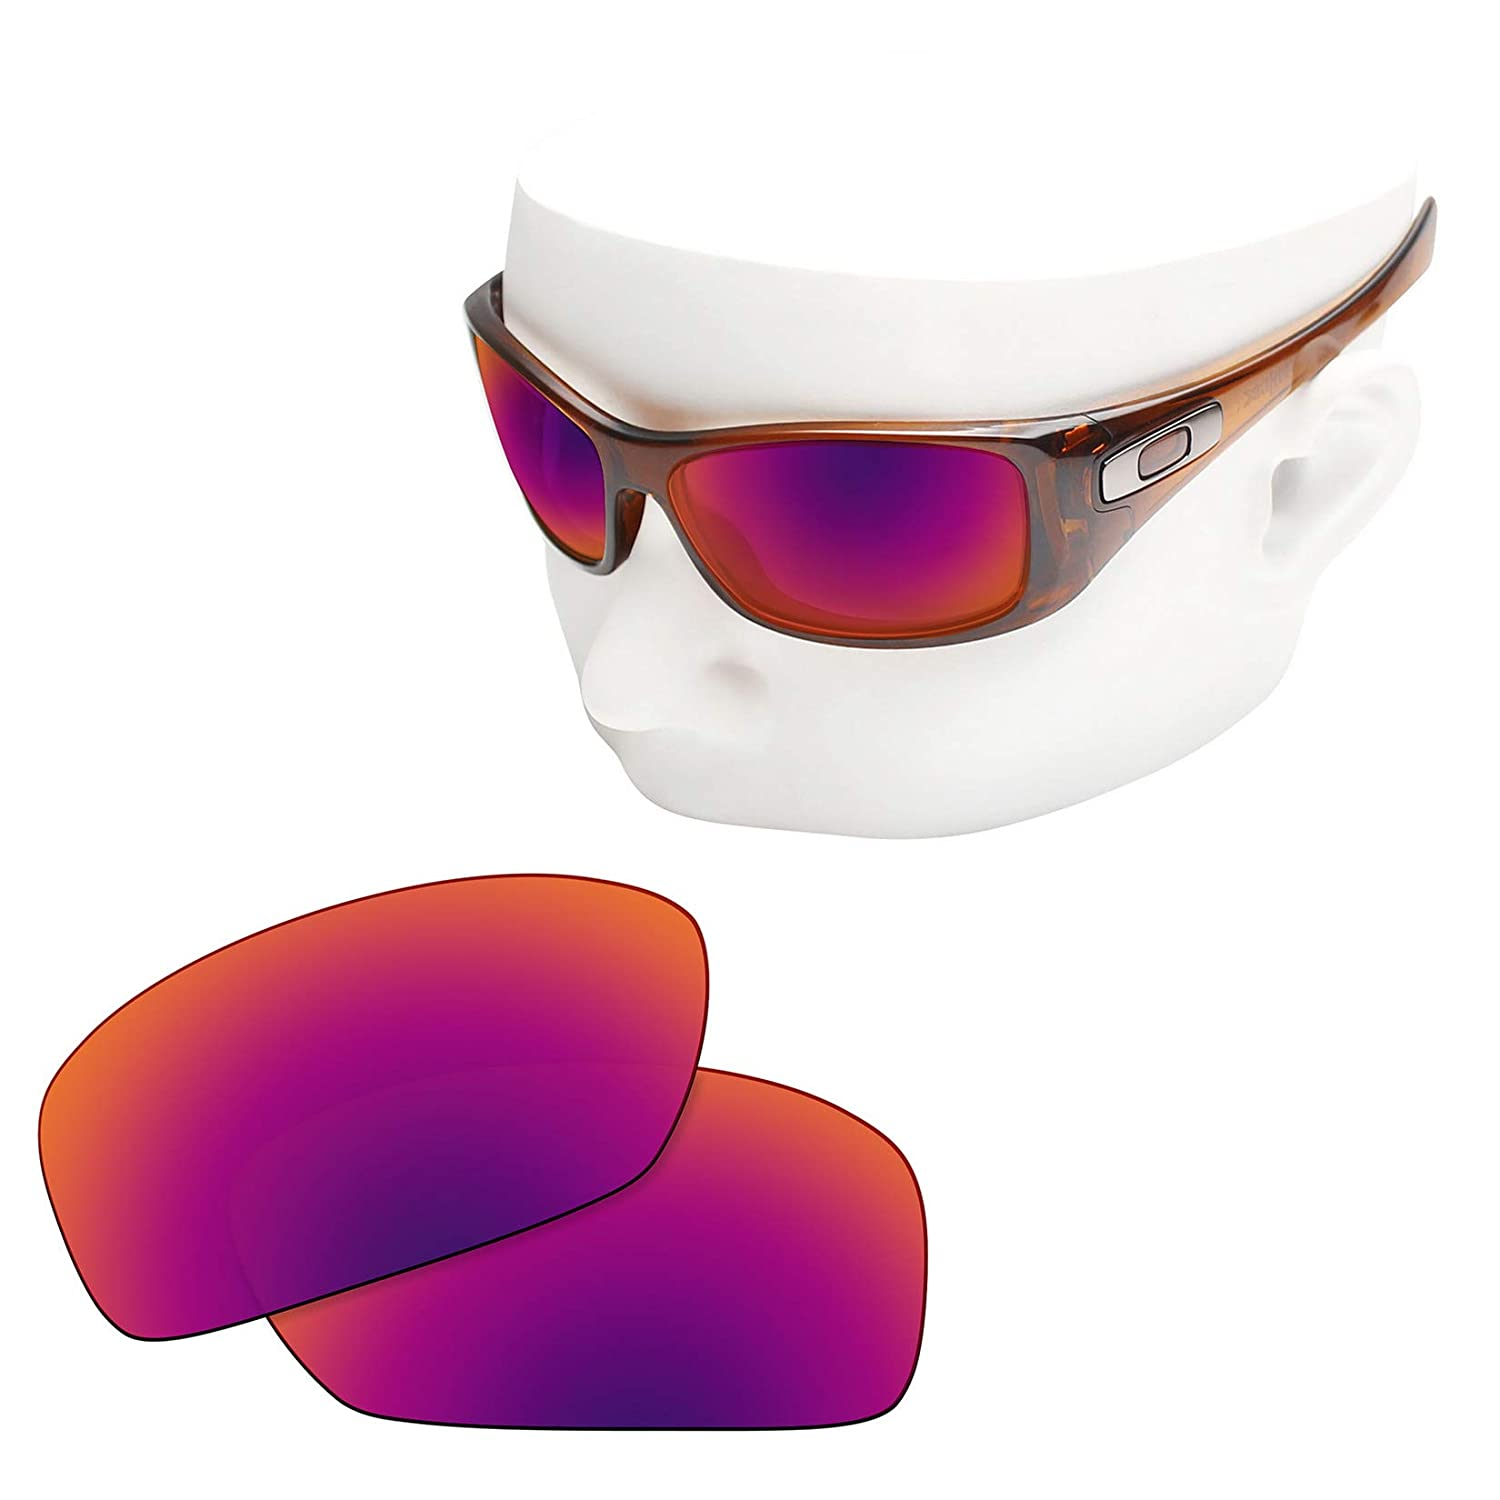 05ca6f3c4c Amazon.com  OOWLIT Replacement Sunglass Lenses for Oakley Hijinx Purple Red  Mirror Polarized  Clothing